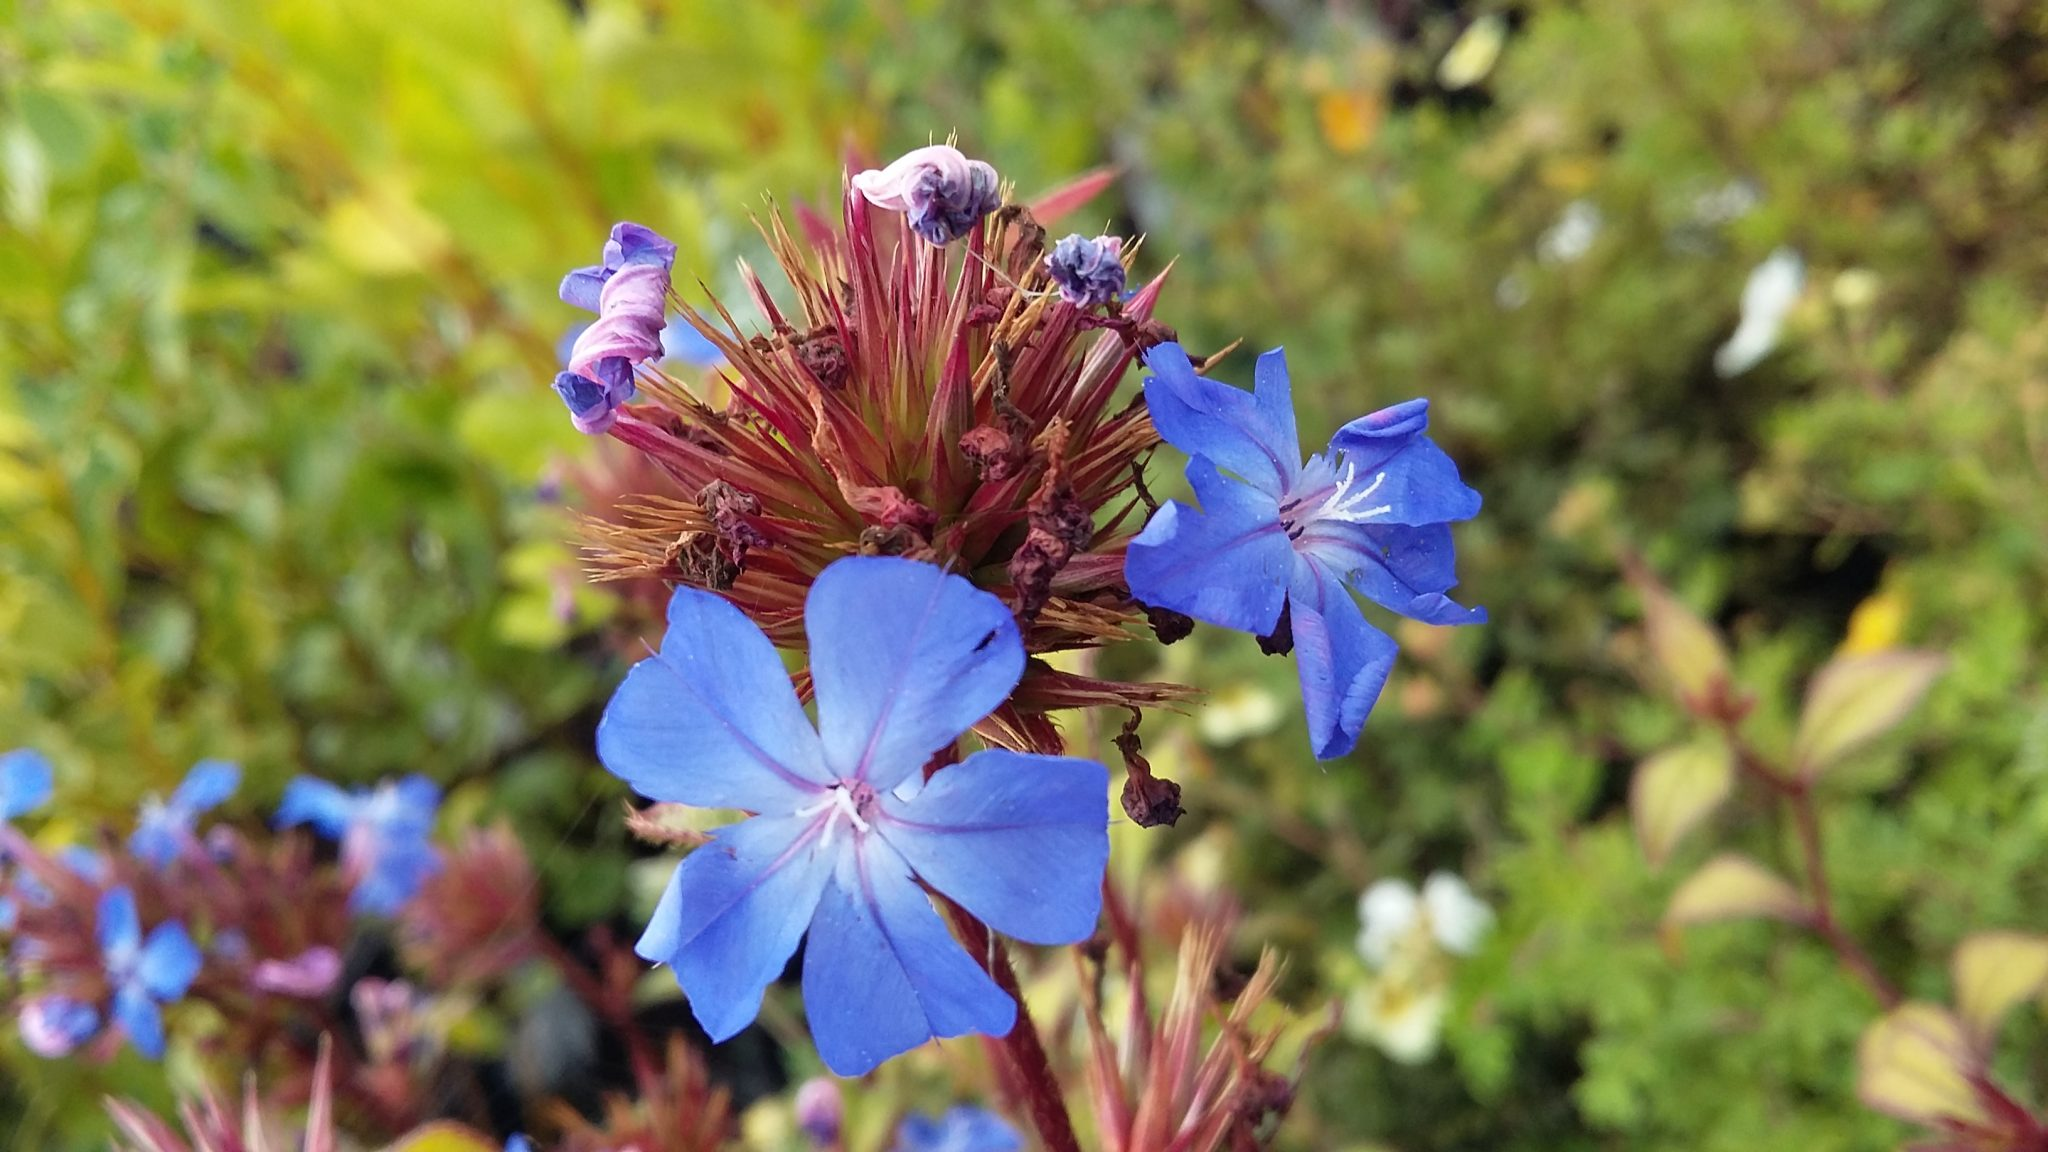 Cerotostigma - one of Paul's favourite shrubs with amazing blue flowers and autumn foliage colour